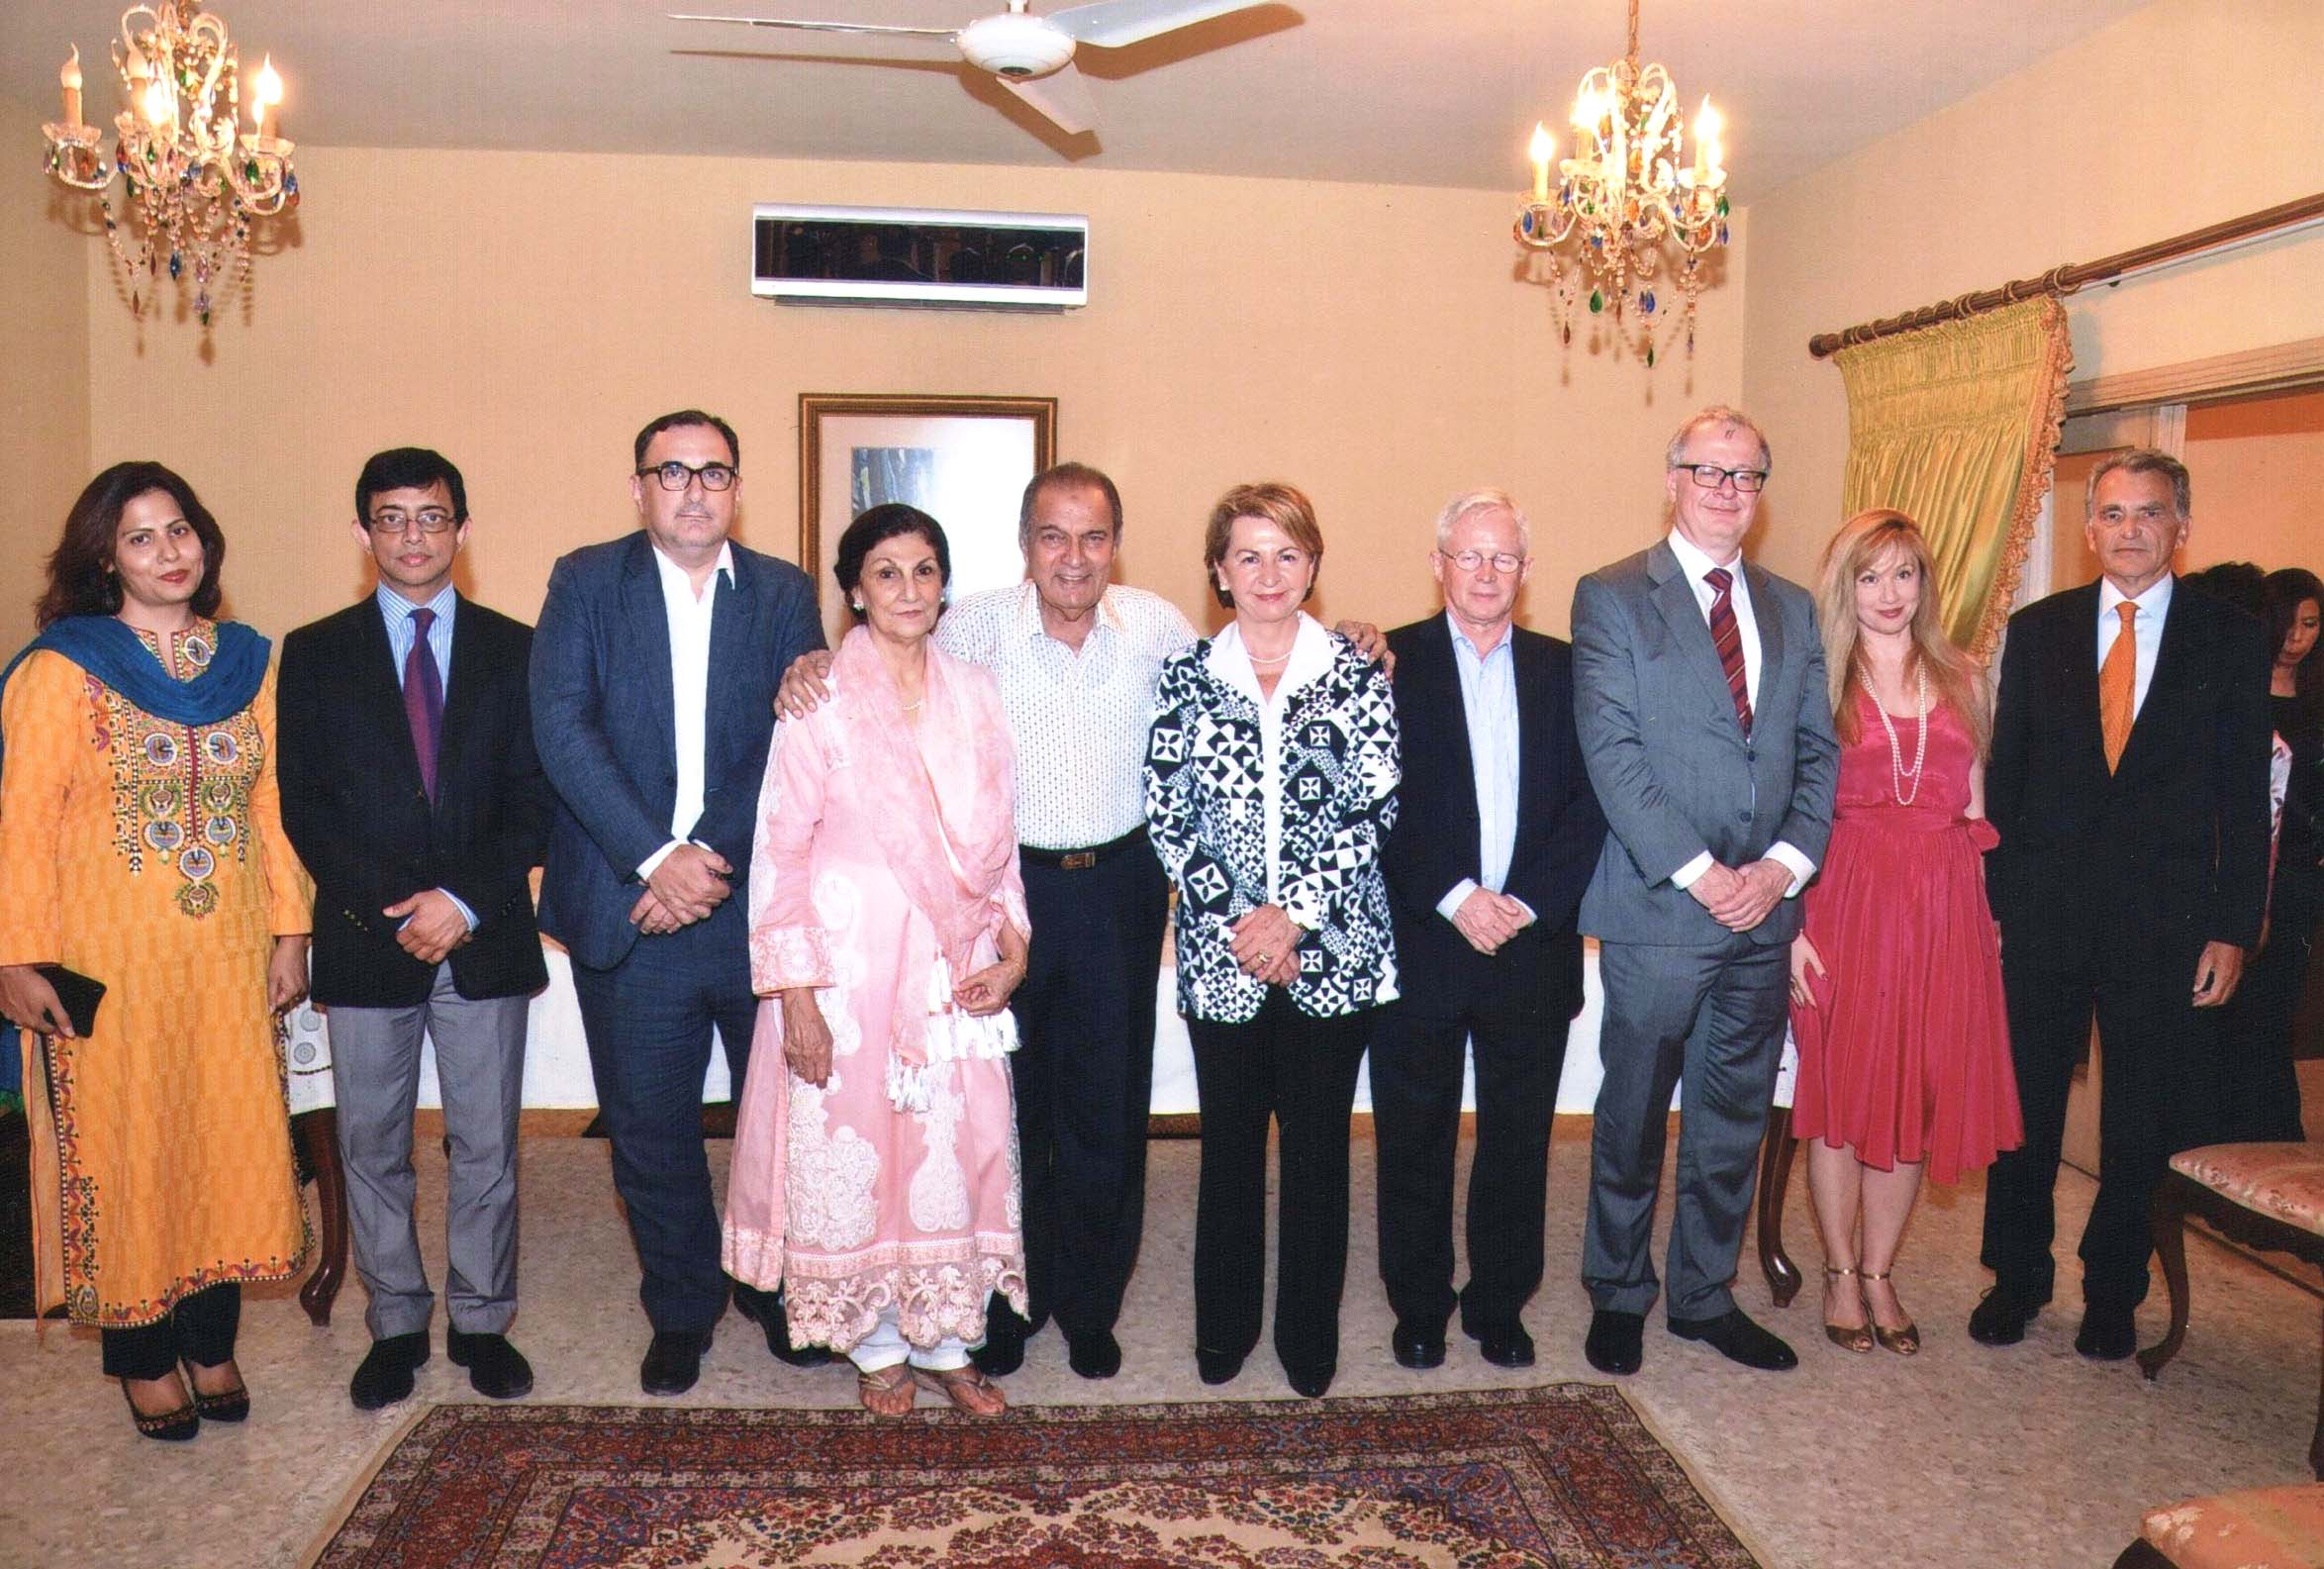 From left to right: Mrs. Shakeel MAPARA, Mr. Shakeel MAPARA, Mr. Giulio IAZEOLLA, Acting Consul of Italy, Mrs. Nargis Kader Jaffer, Host Mr. Abdul Kader Jaffer, Her Excellency, Mrs.<p><p id=